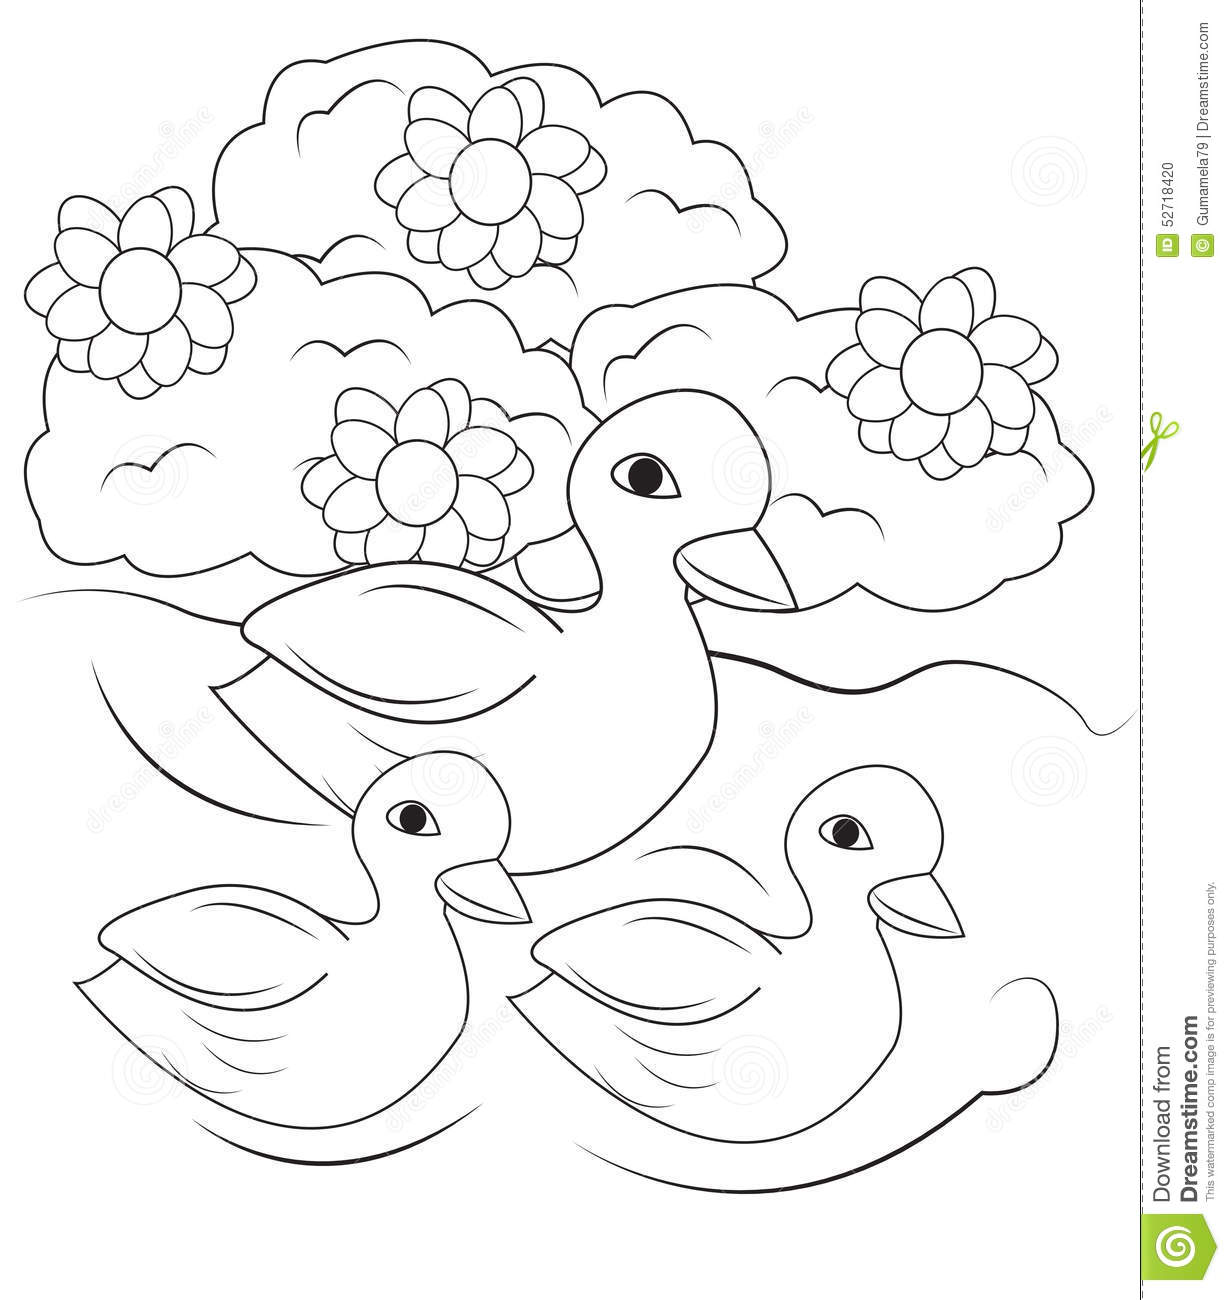 coloring pages swimming in a lake | Ducks Swimming In The Pond Coloring Page Stock ...